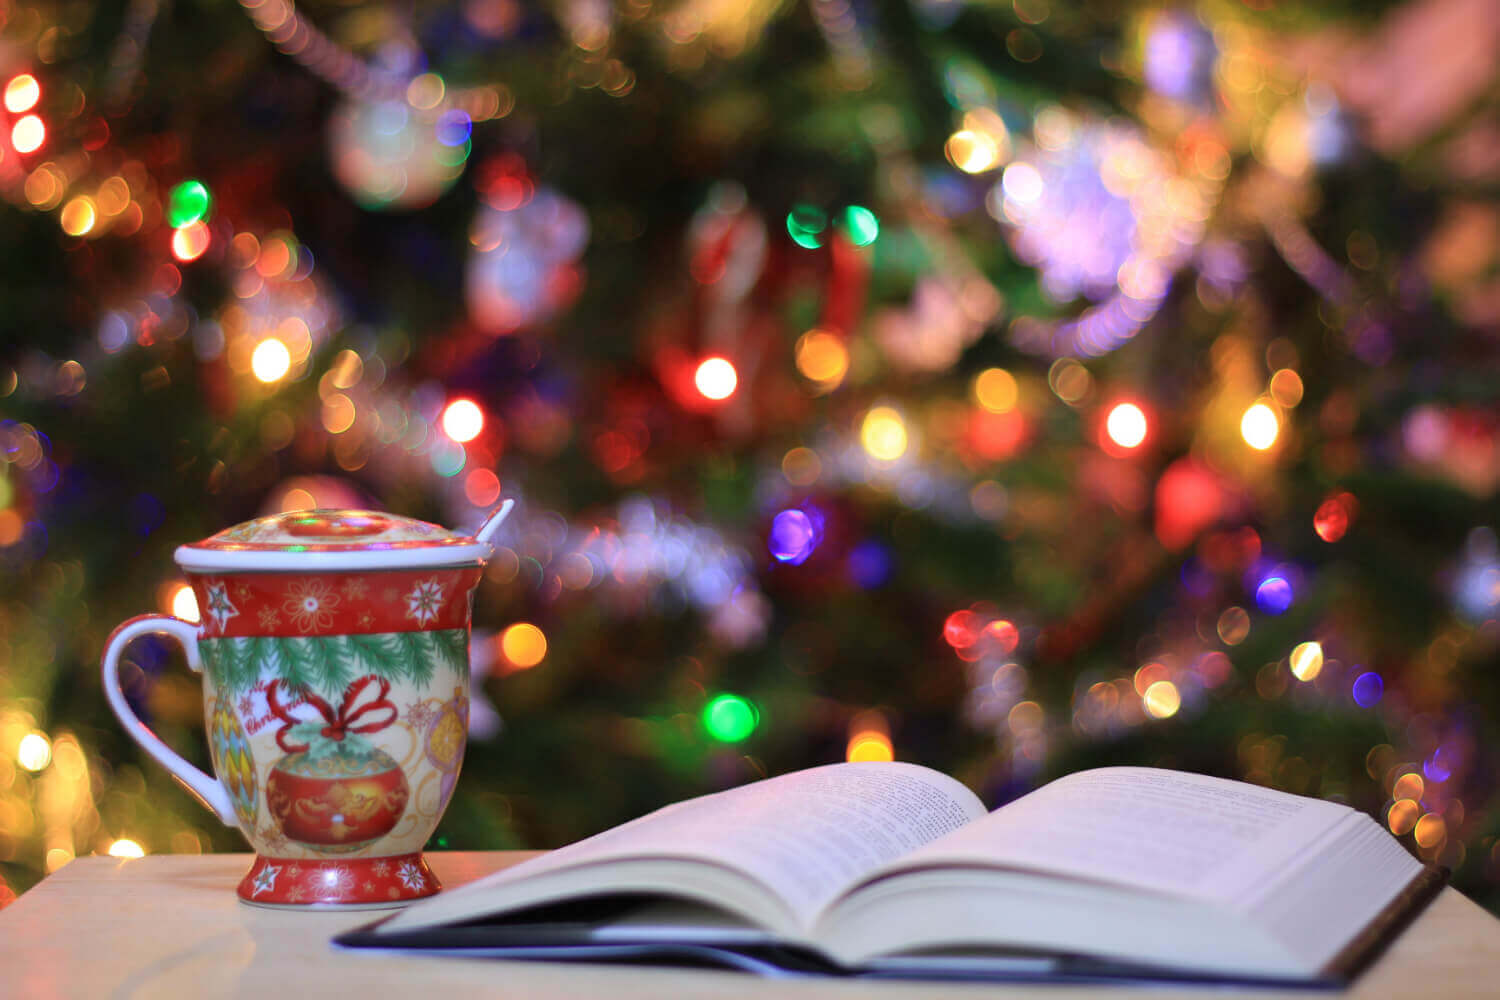 Make Christmas cosy, not crazy by Rosalyn Palmer